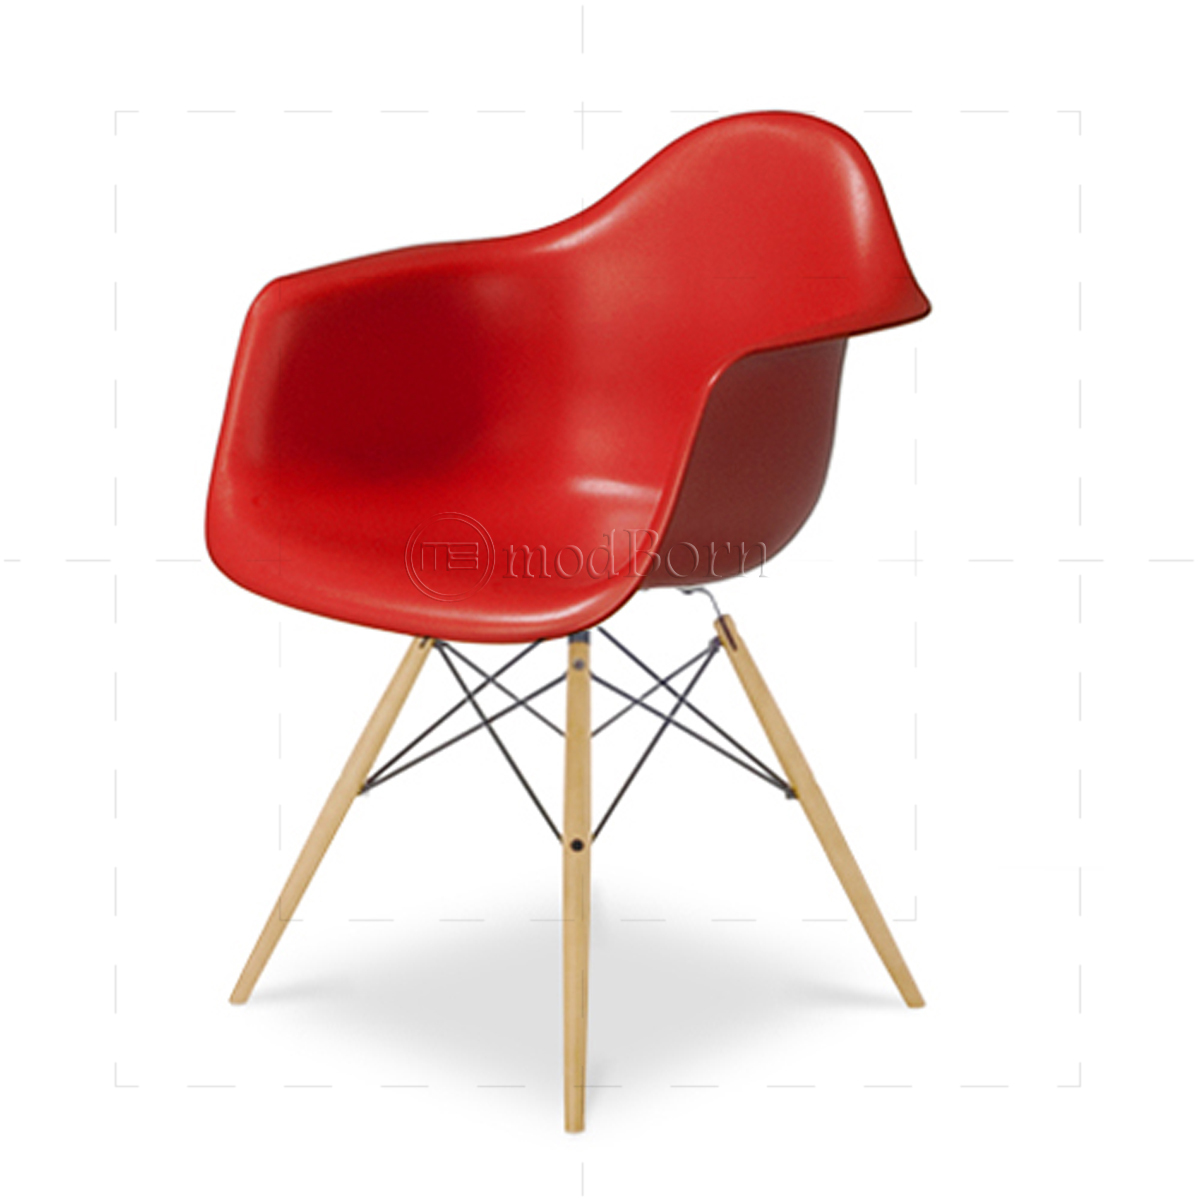 eames replica chairs uk chair cover rentals in maryland style dining daw arm red